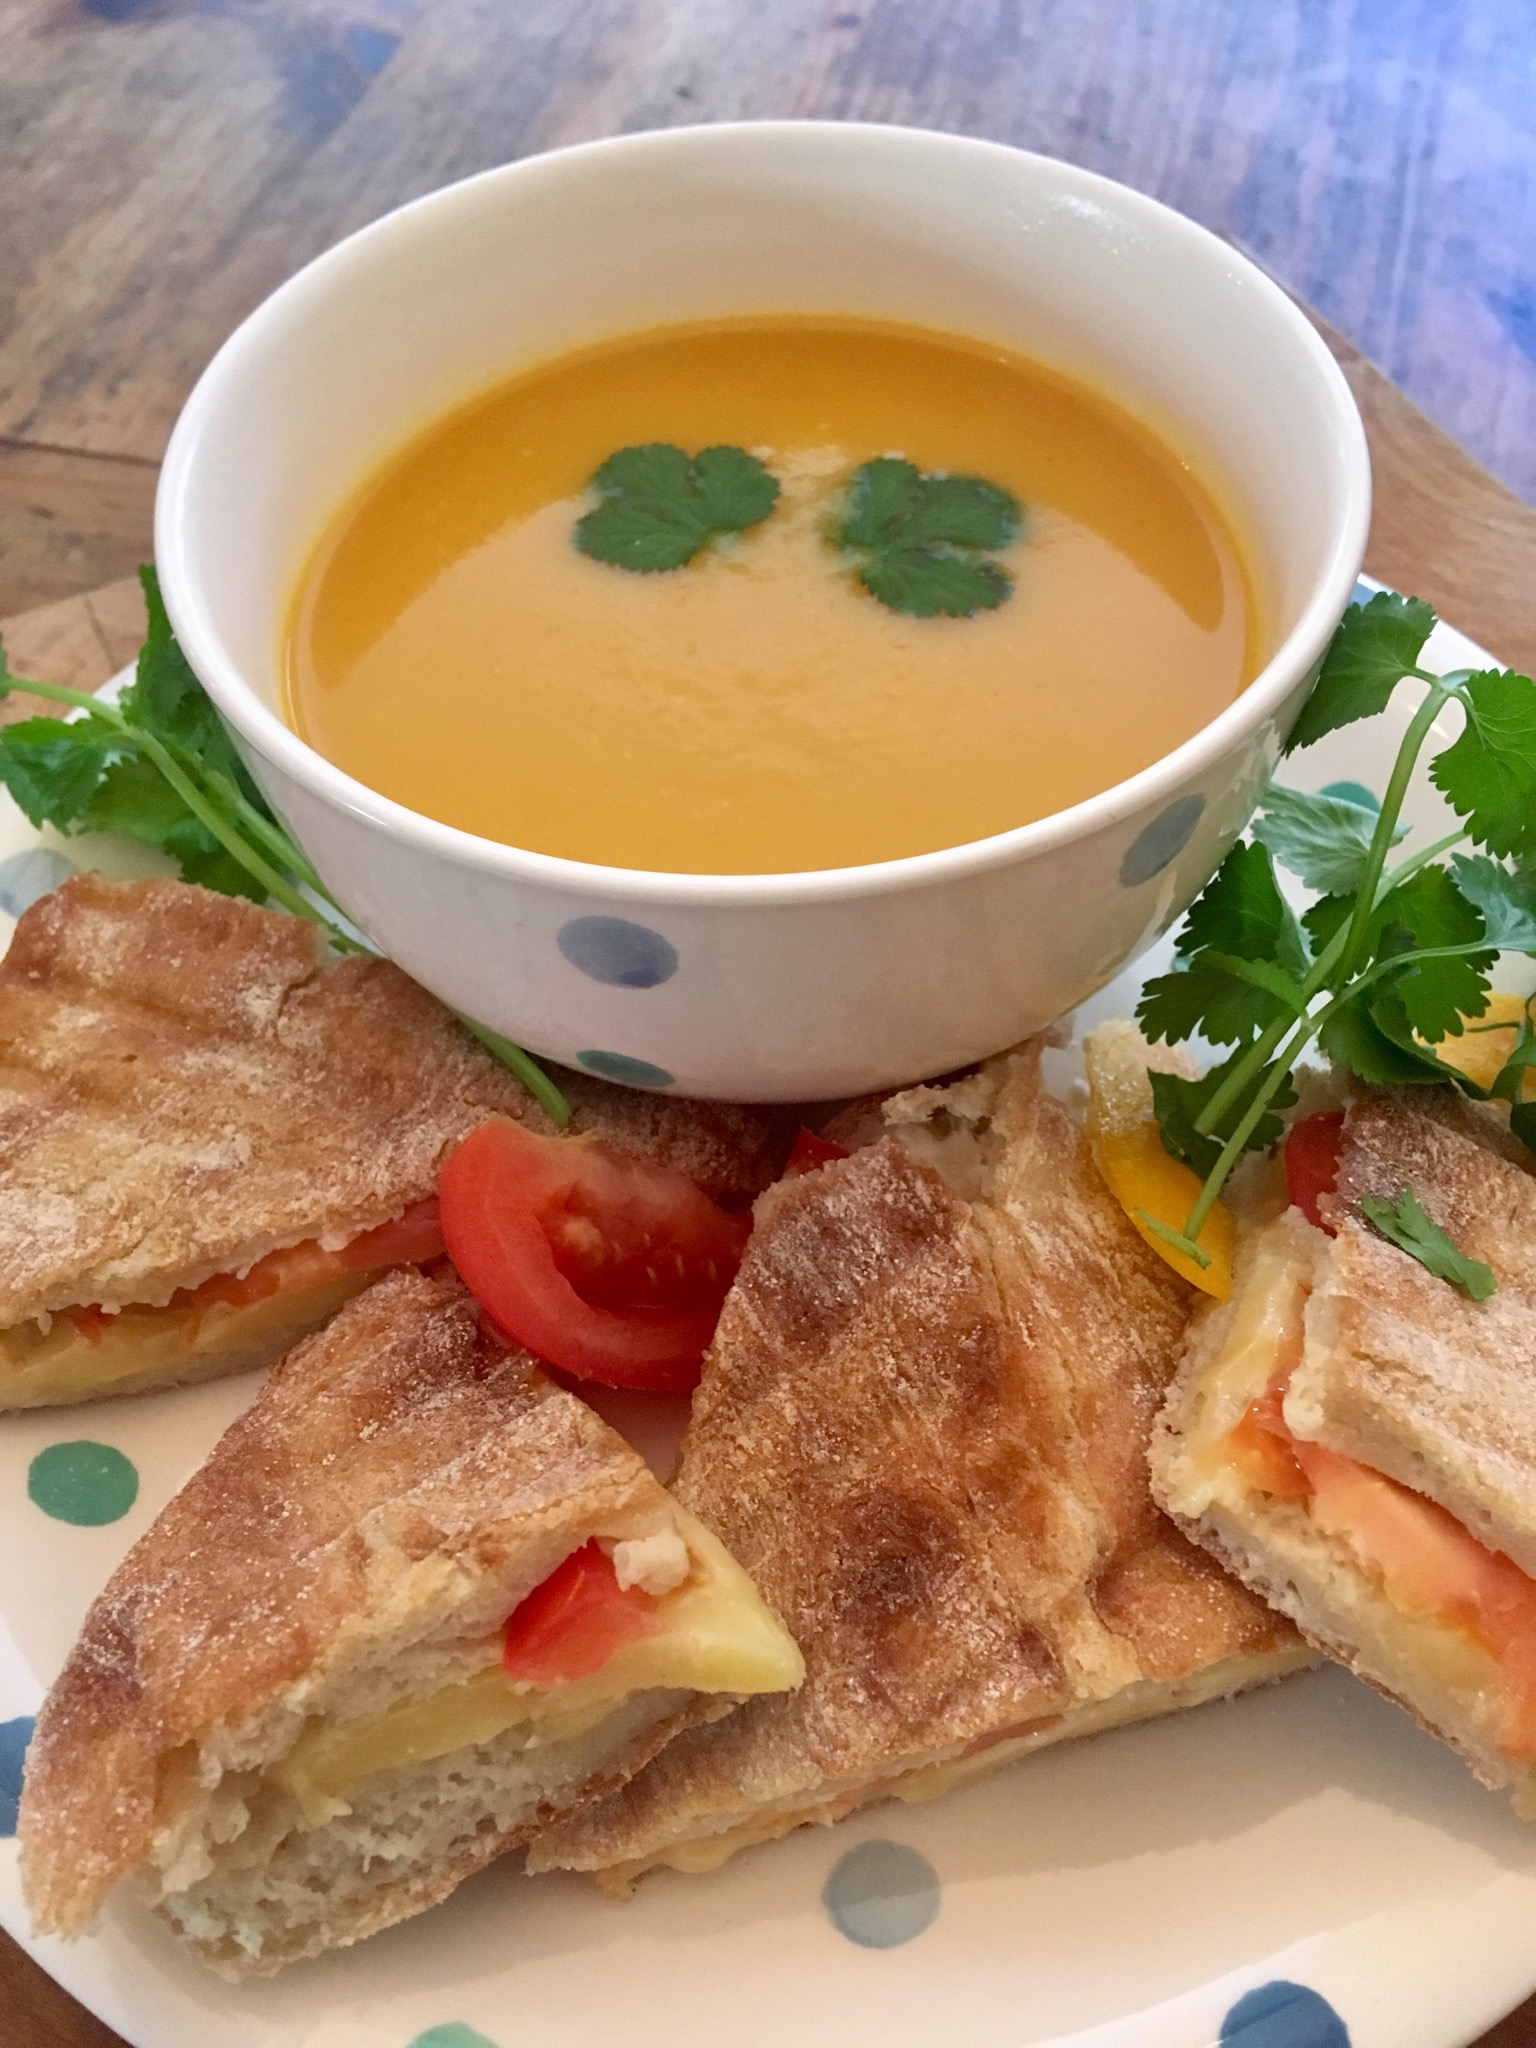 Carrot and coriander soup with cheese and tomato ciabatta